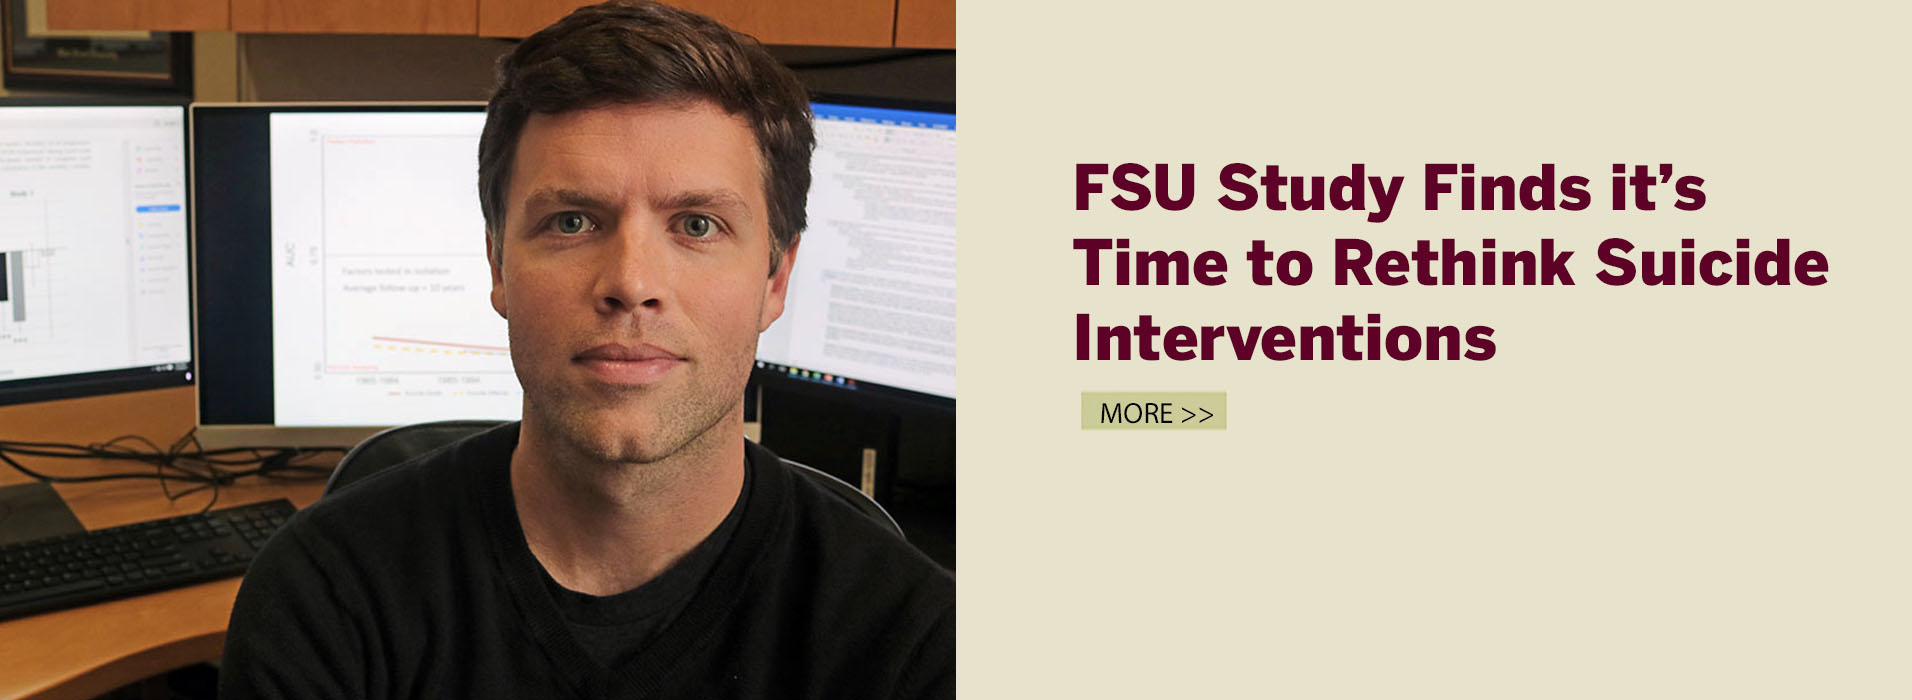 FSU Study Finds it's Time to Rethink Suicide Interventions